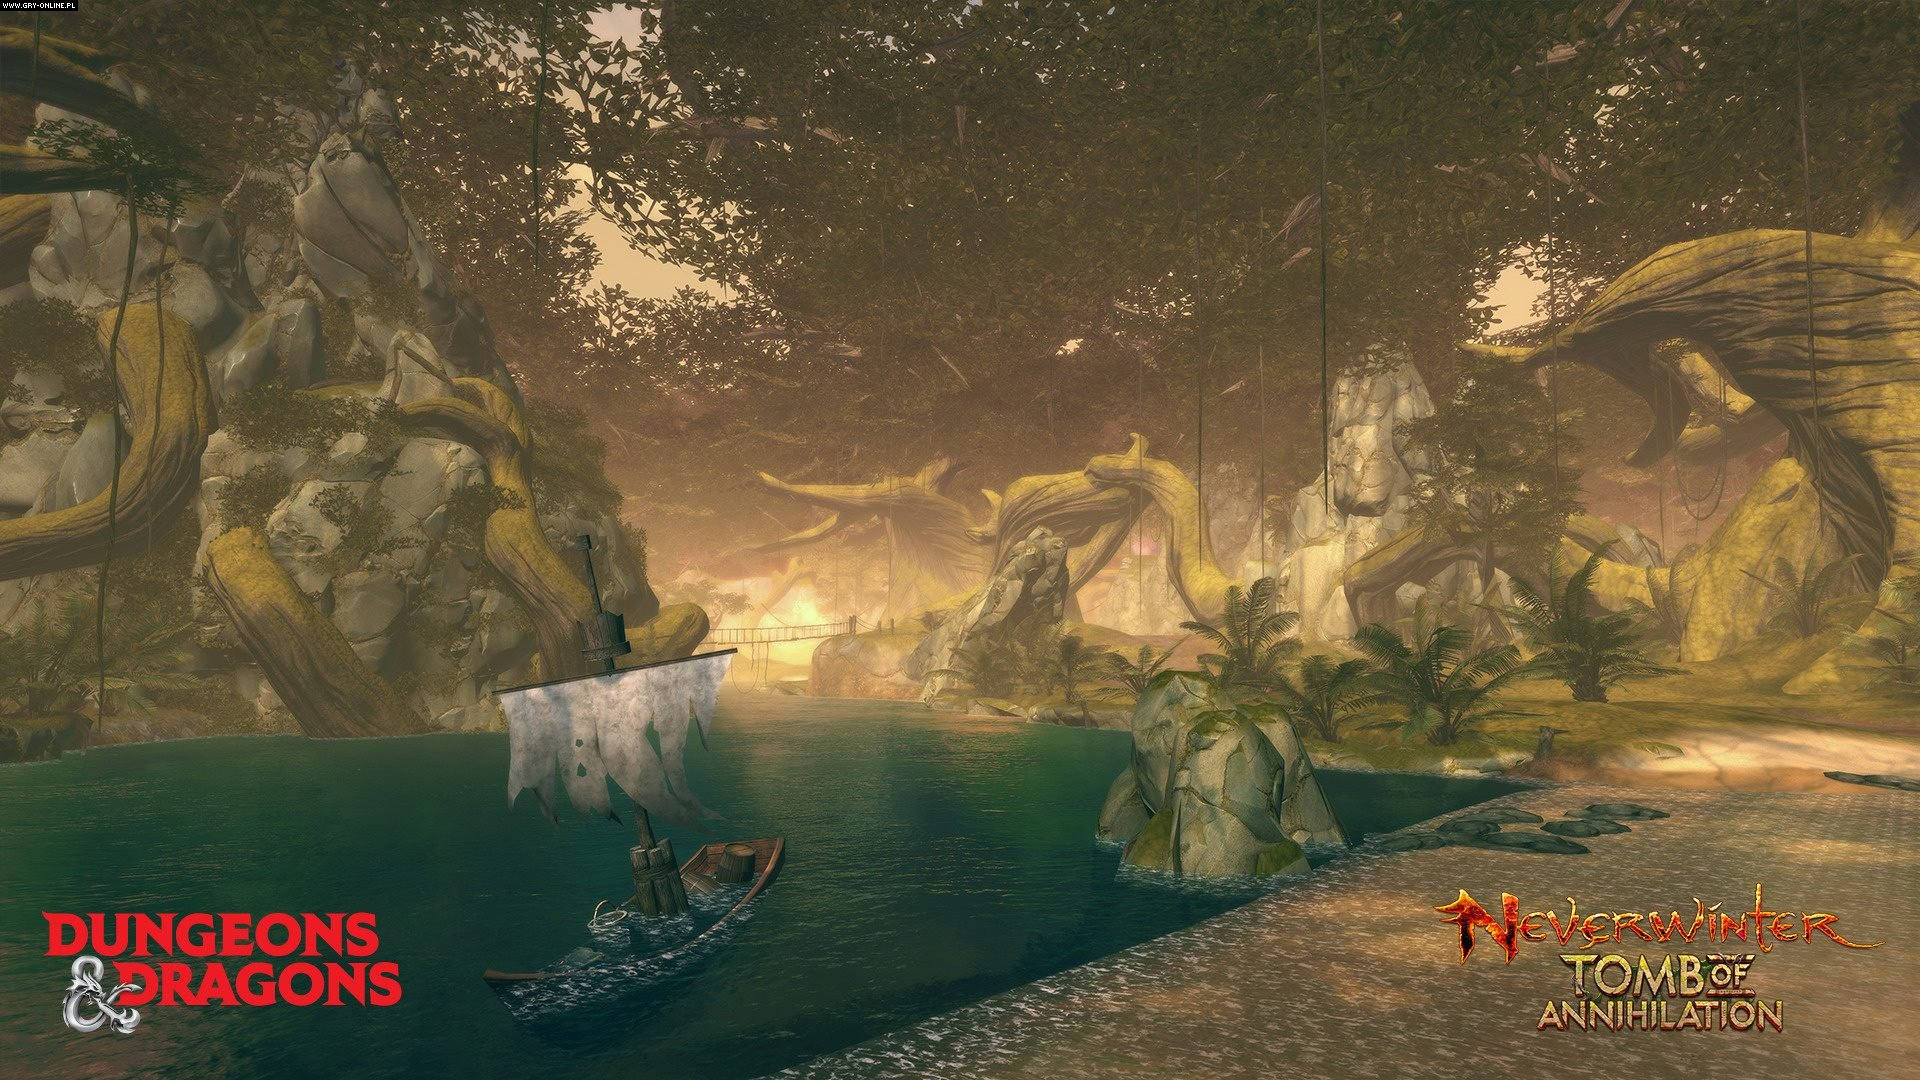 Neverwinter PC, PS4, XONE Games Image 8/342, Cryptic Studios, Perfect World Entertainment